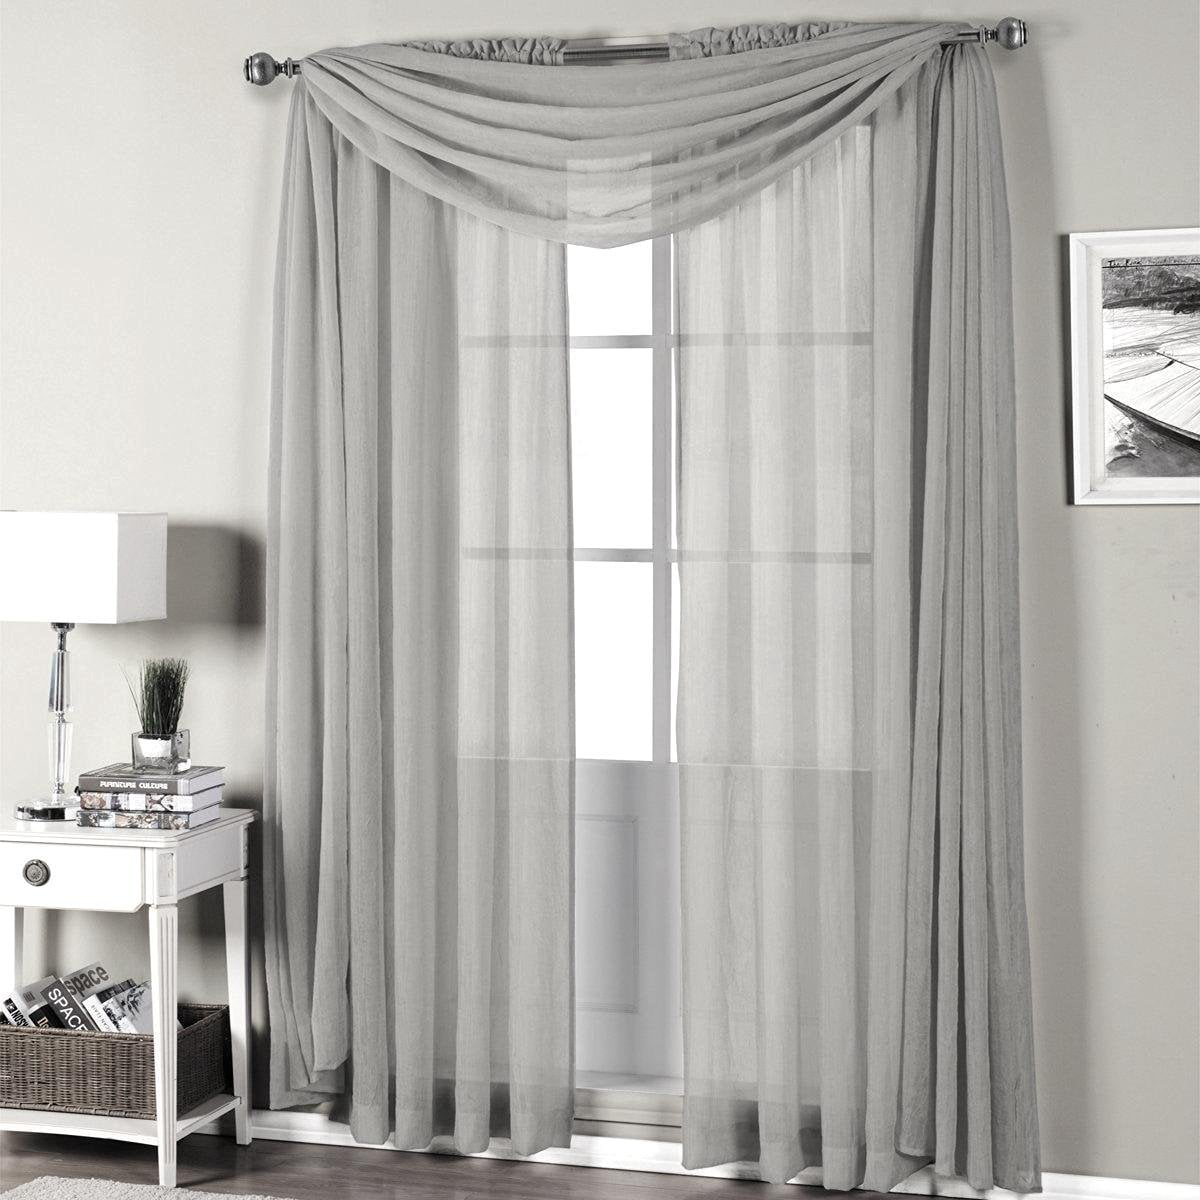 l semi w drapes opaque top gregory darkening p room patio taupe in x curtains zero sun grommet panel